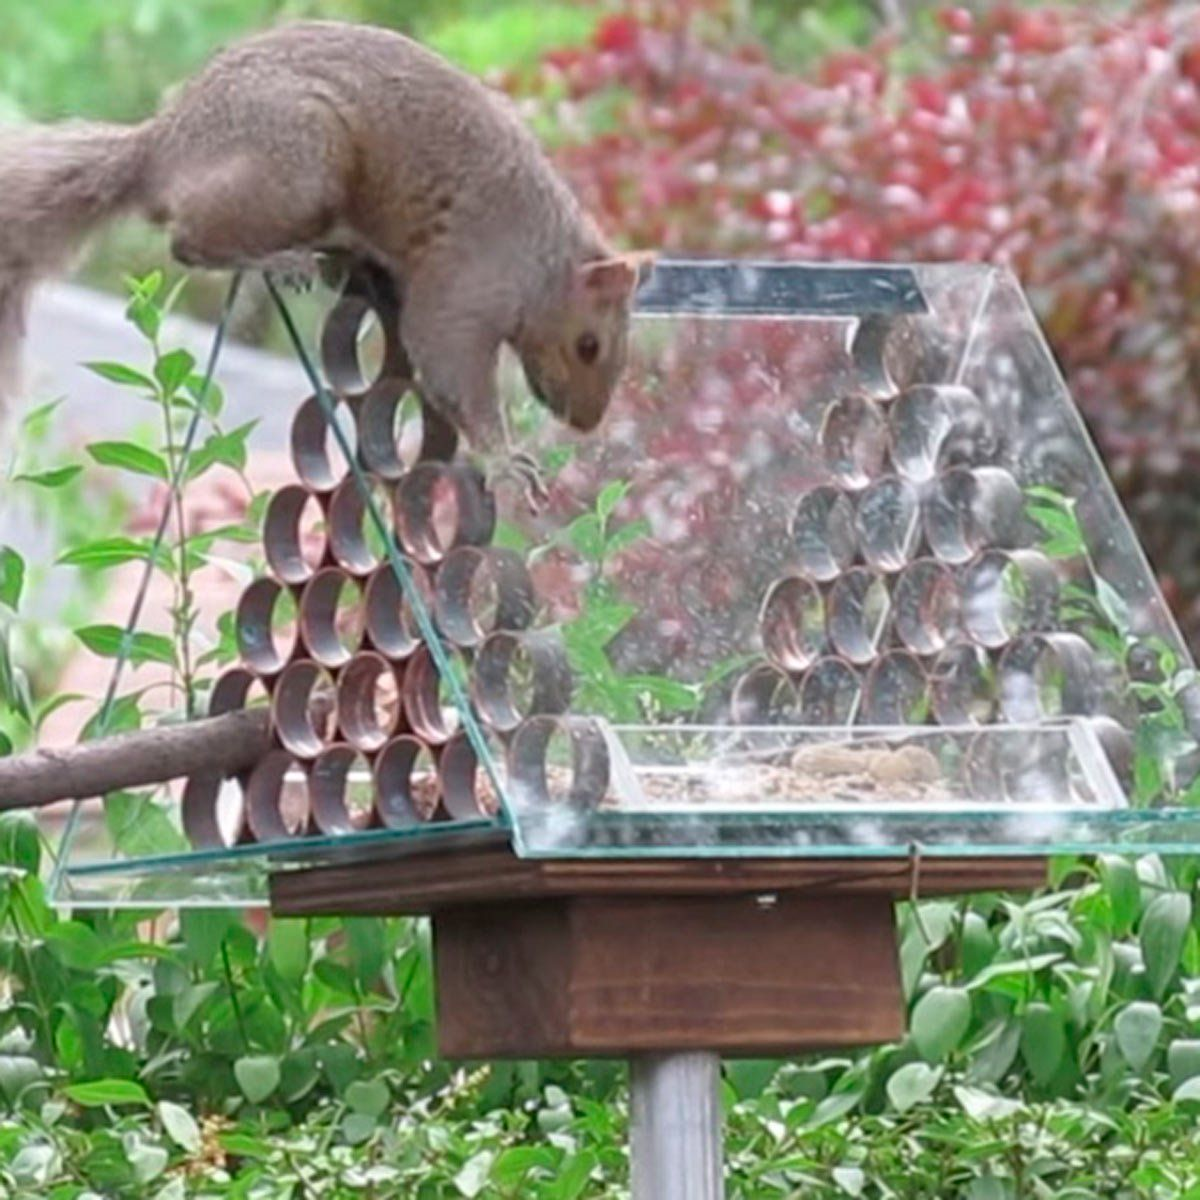 10 favorite attempts at preventing squirrels from reaching